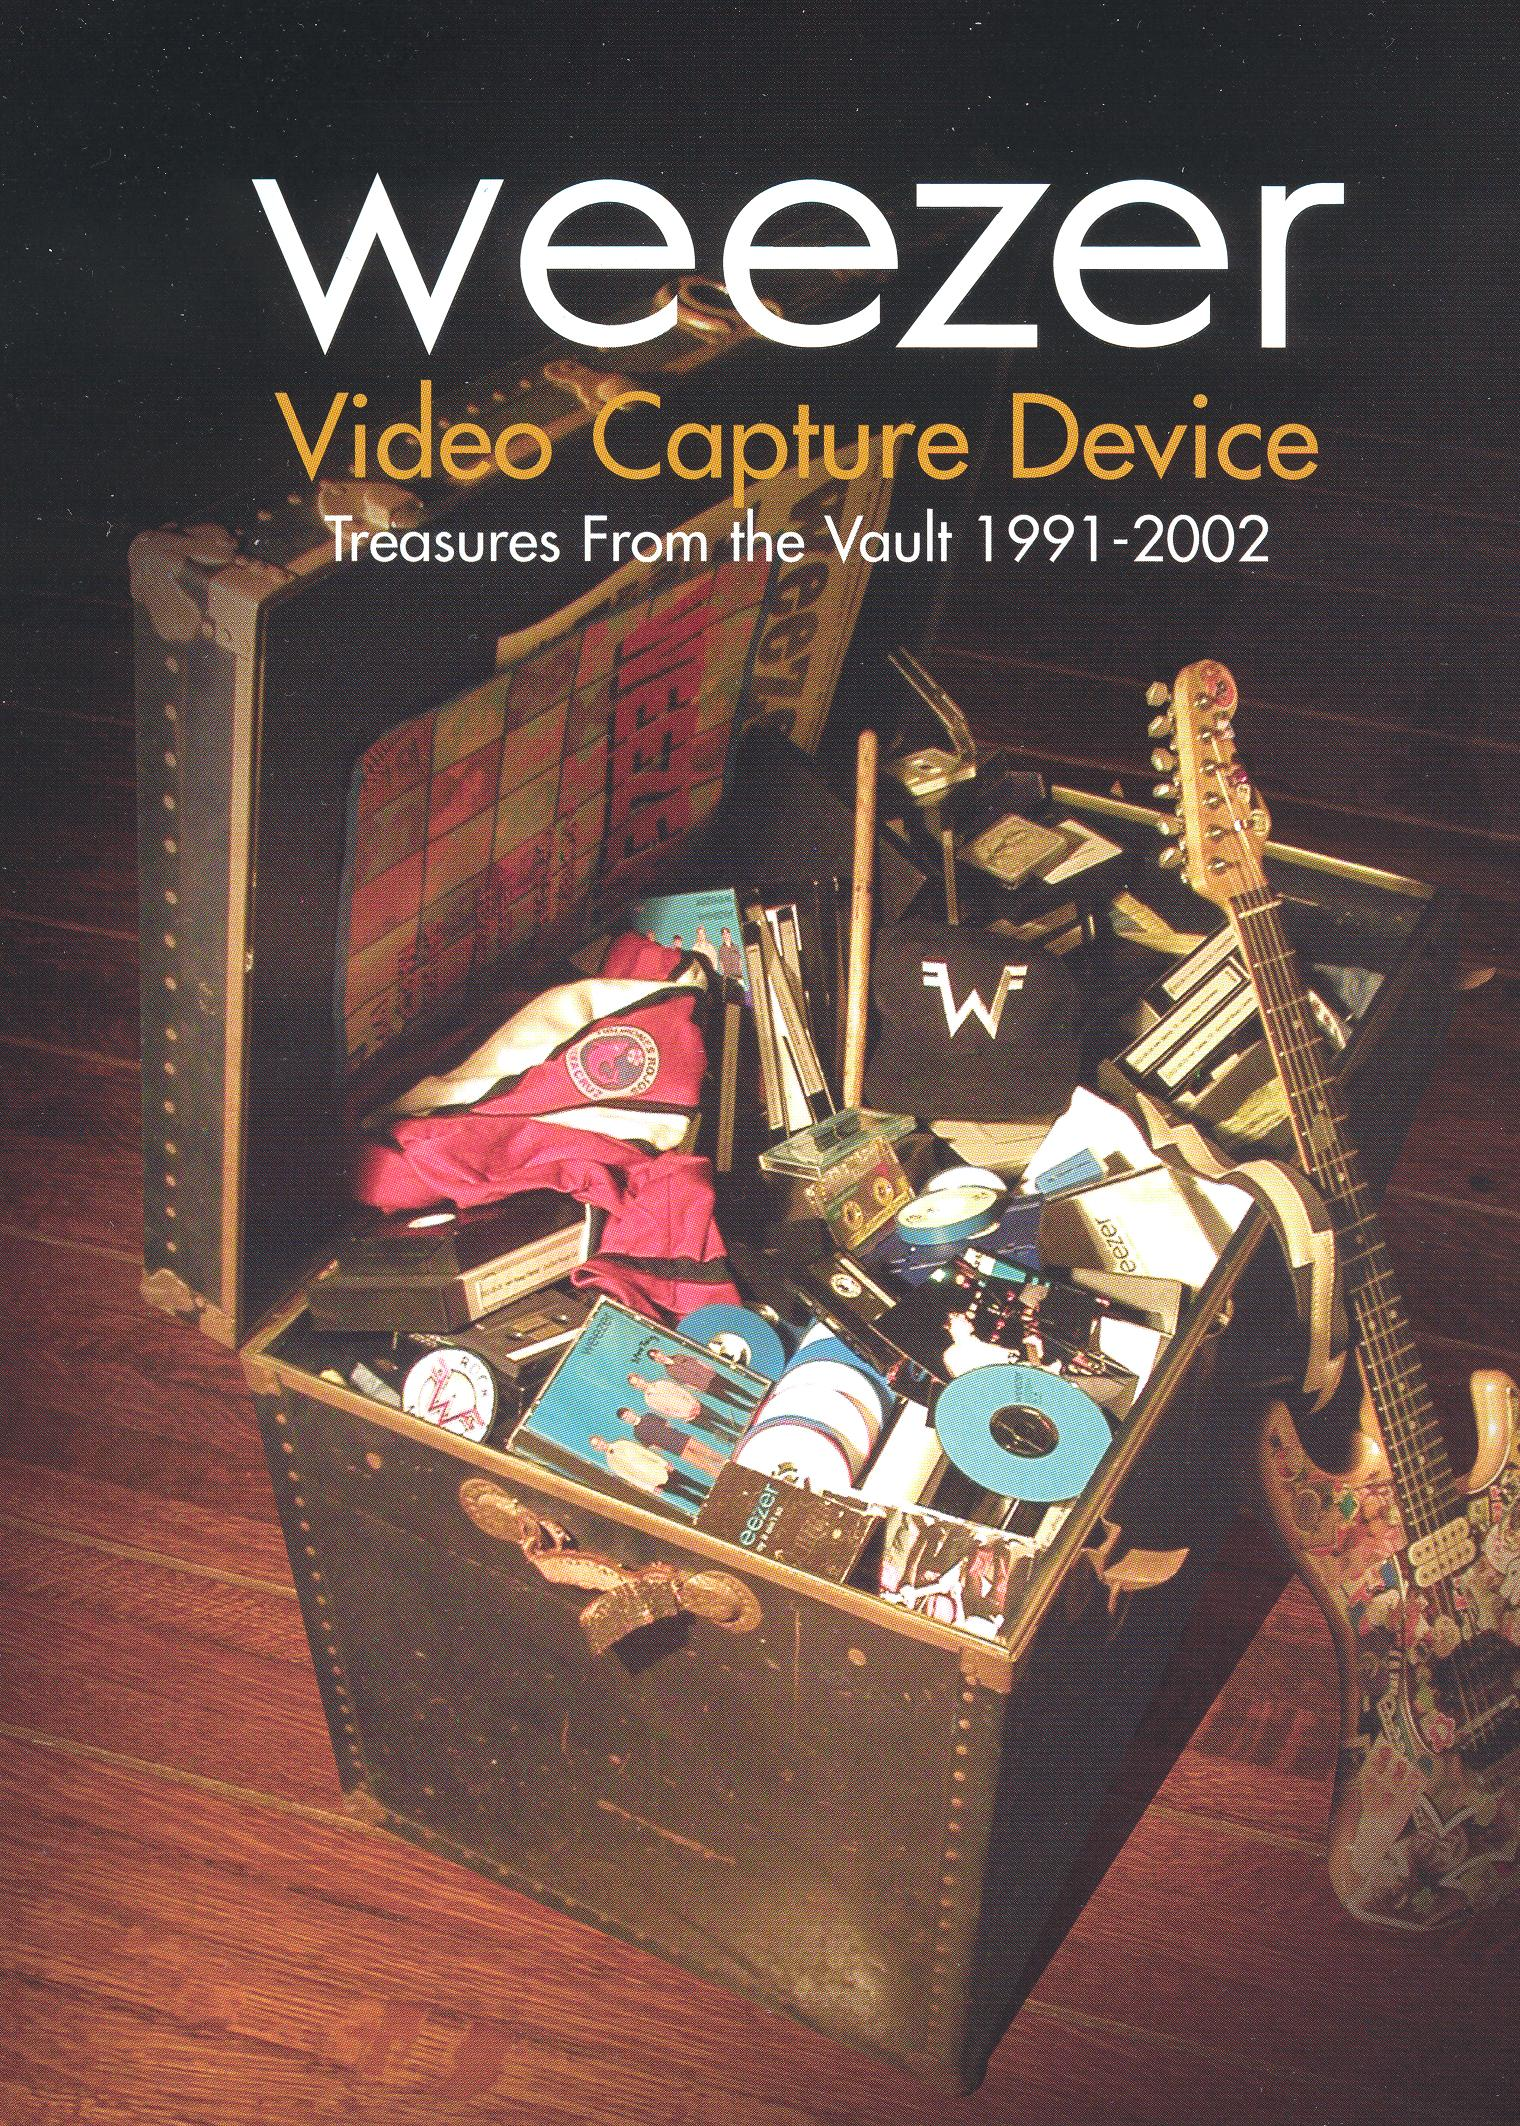 Weezer: Video Capture Device - Treasures From the Vault, 1991-2002